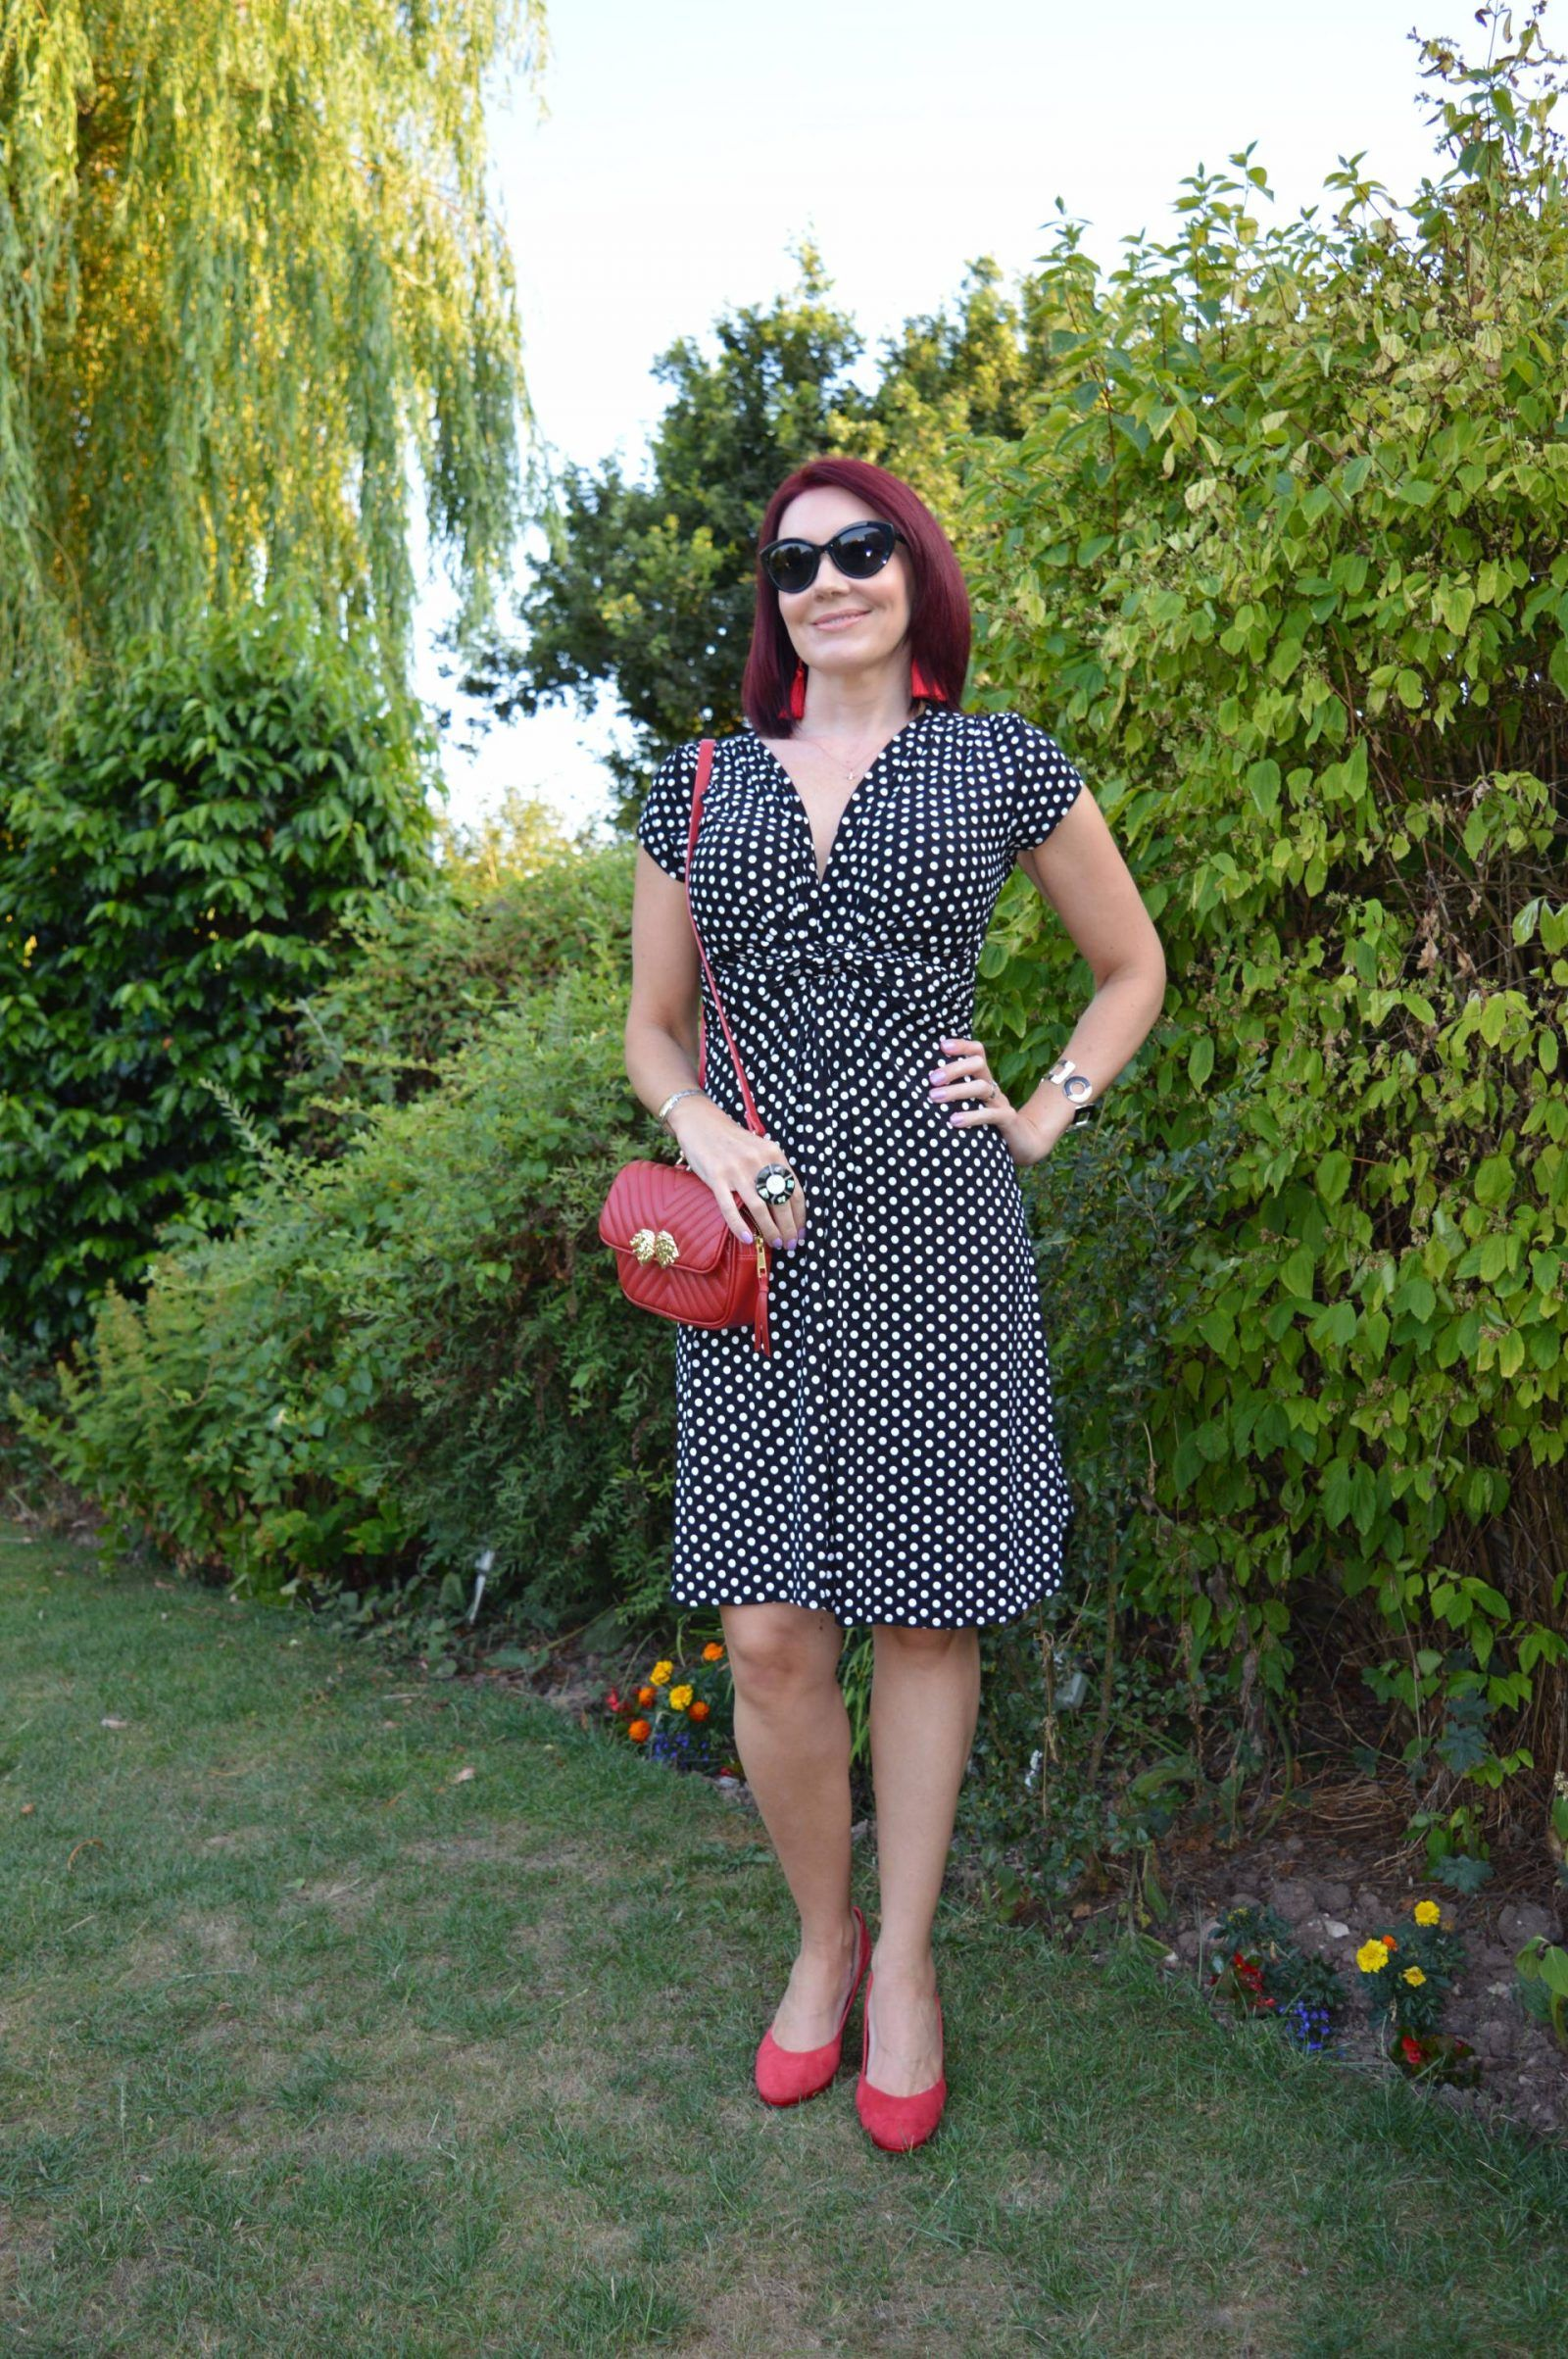 Black And White Polka Dot Dress With Red Accessories White Polka Dot Dress Polka Dot Dress Red Accessories [ 2407 x 1600 Pixel ]